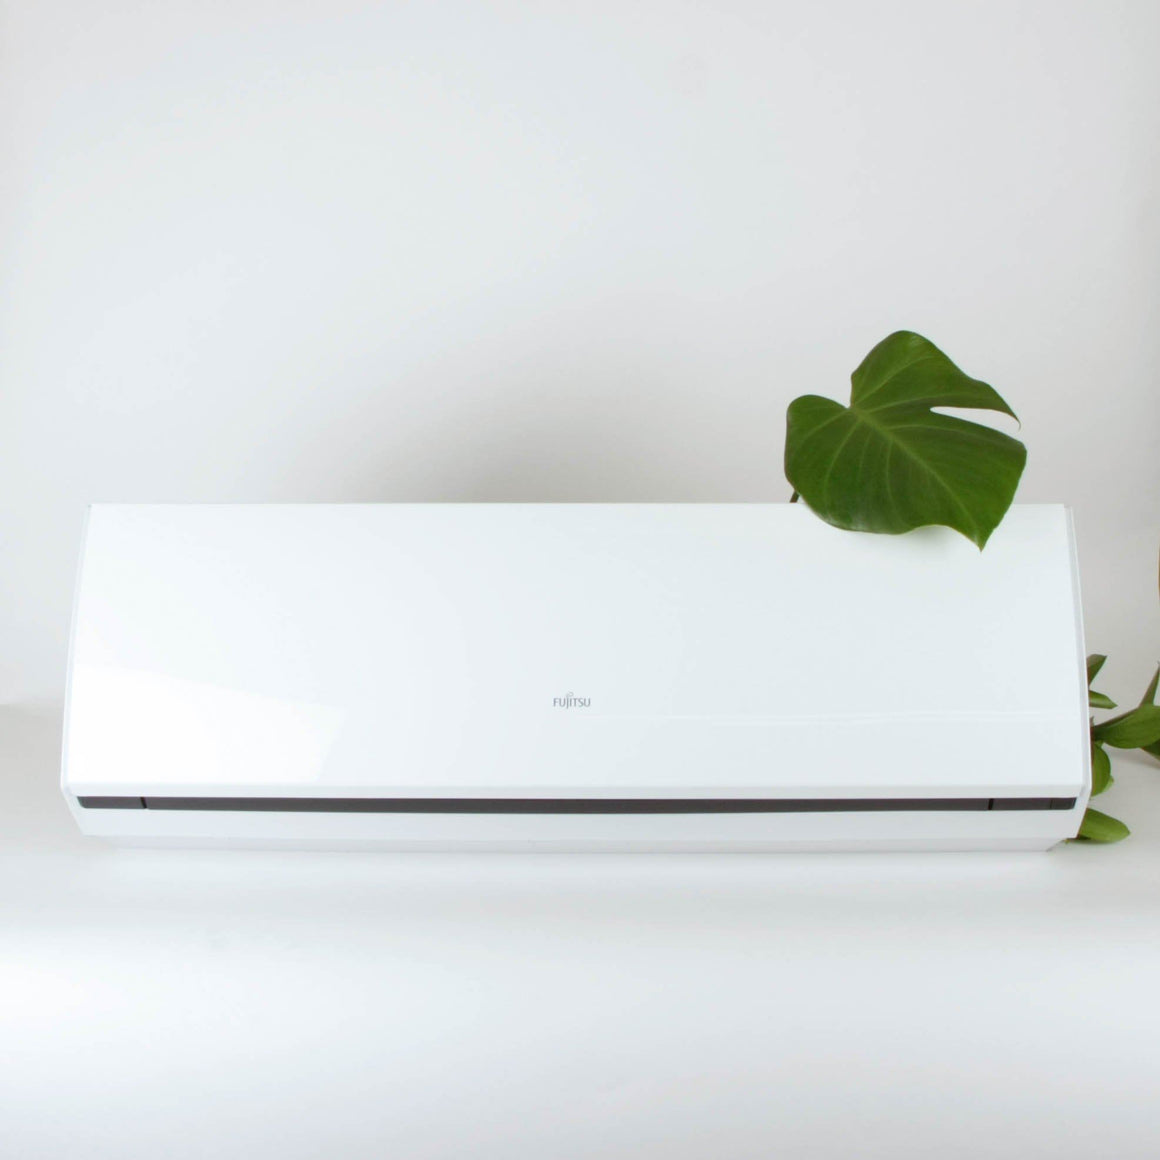 Fujitsu Compact Premier Air Conditioner Heat Pump